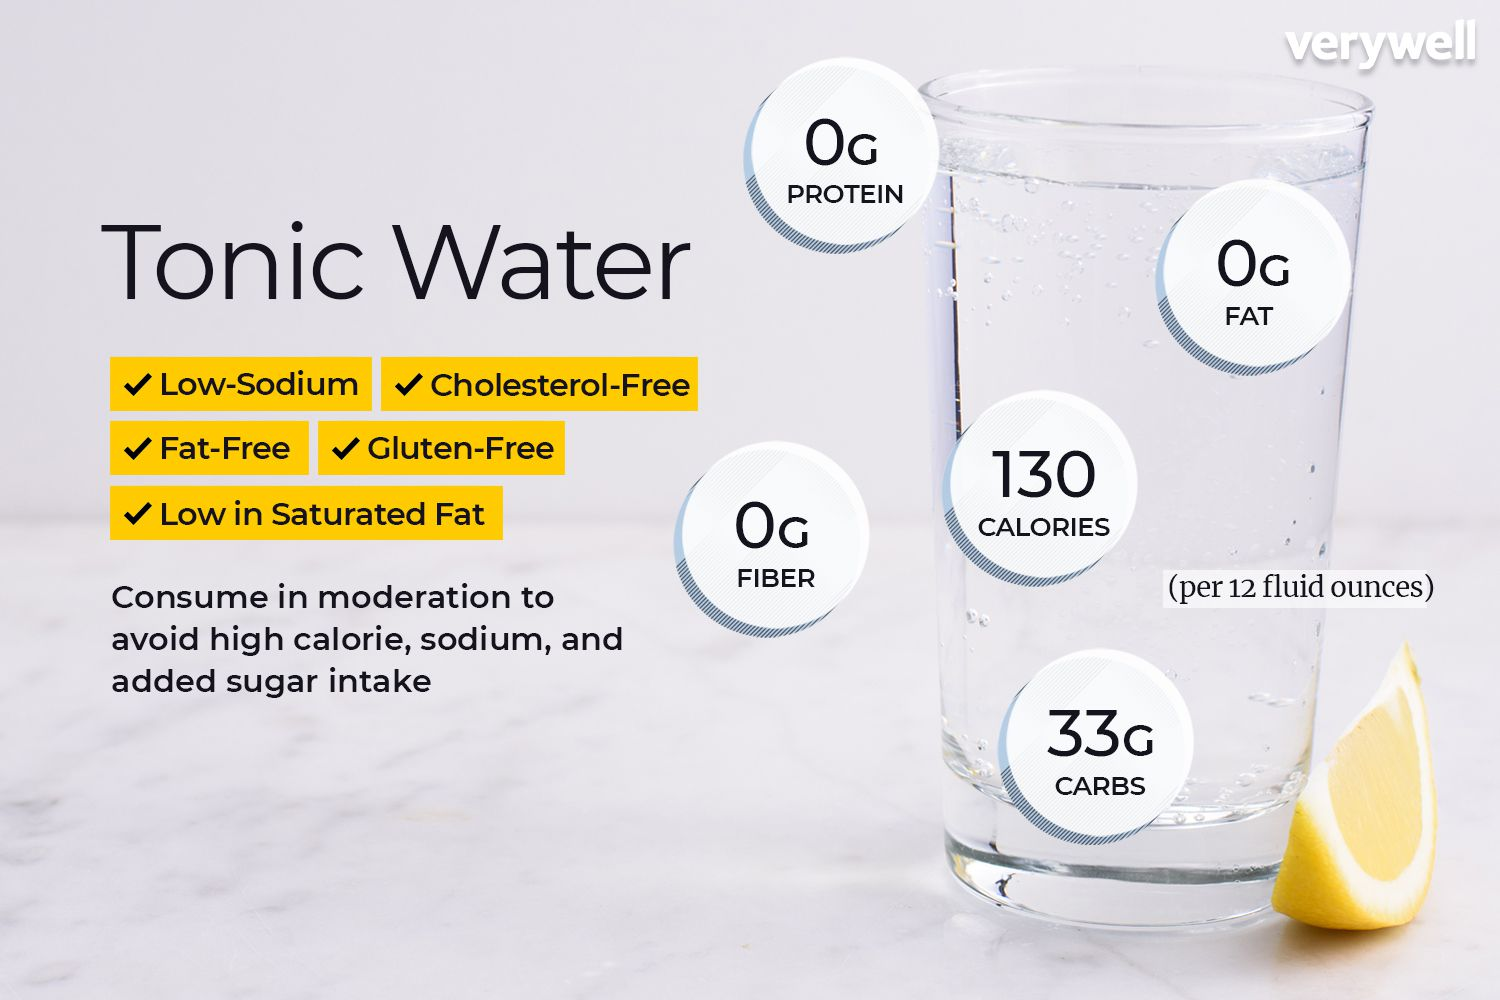 Tonic Water Nutrition Facts: Calories, Carbs, and Health